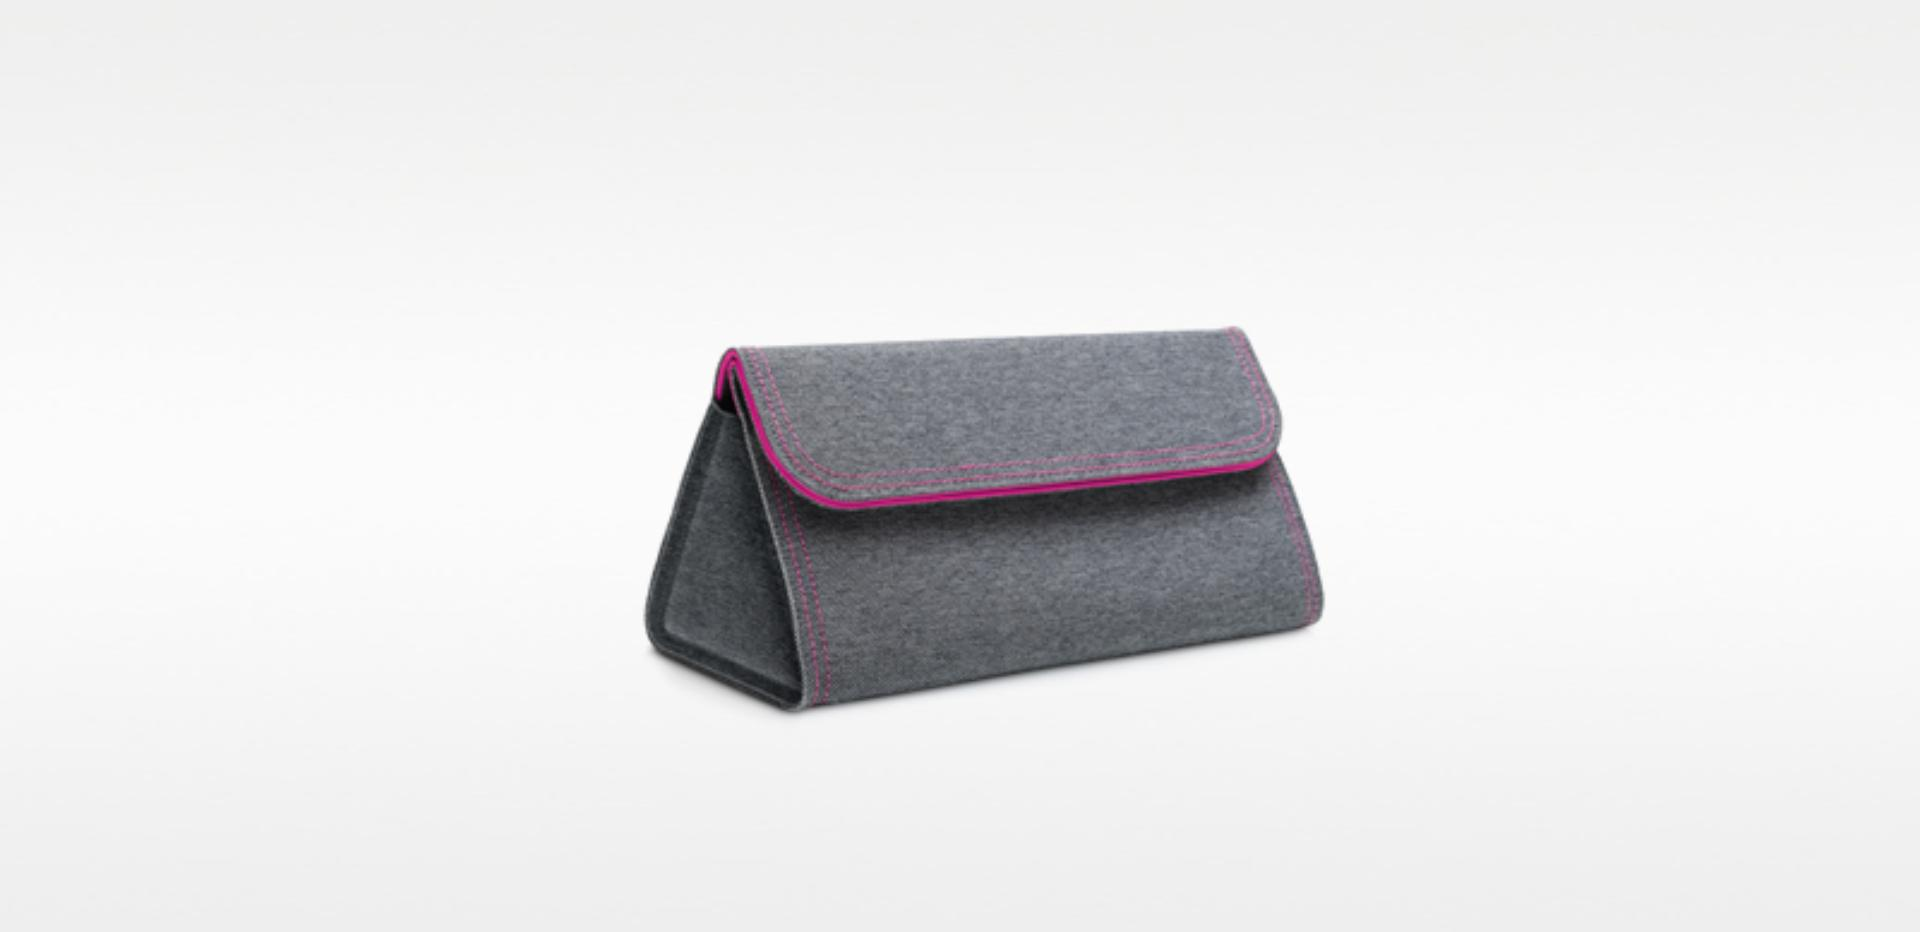 Woven storage bag stitched in fuchsia for the Dyson Supersonic™